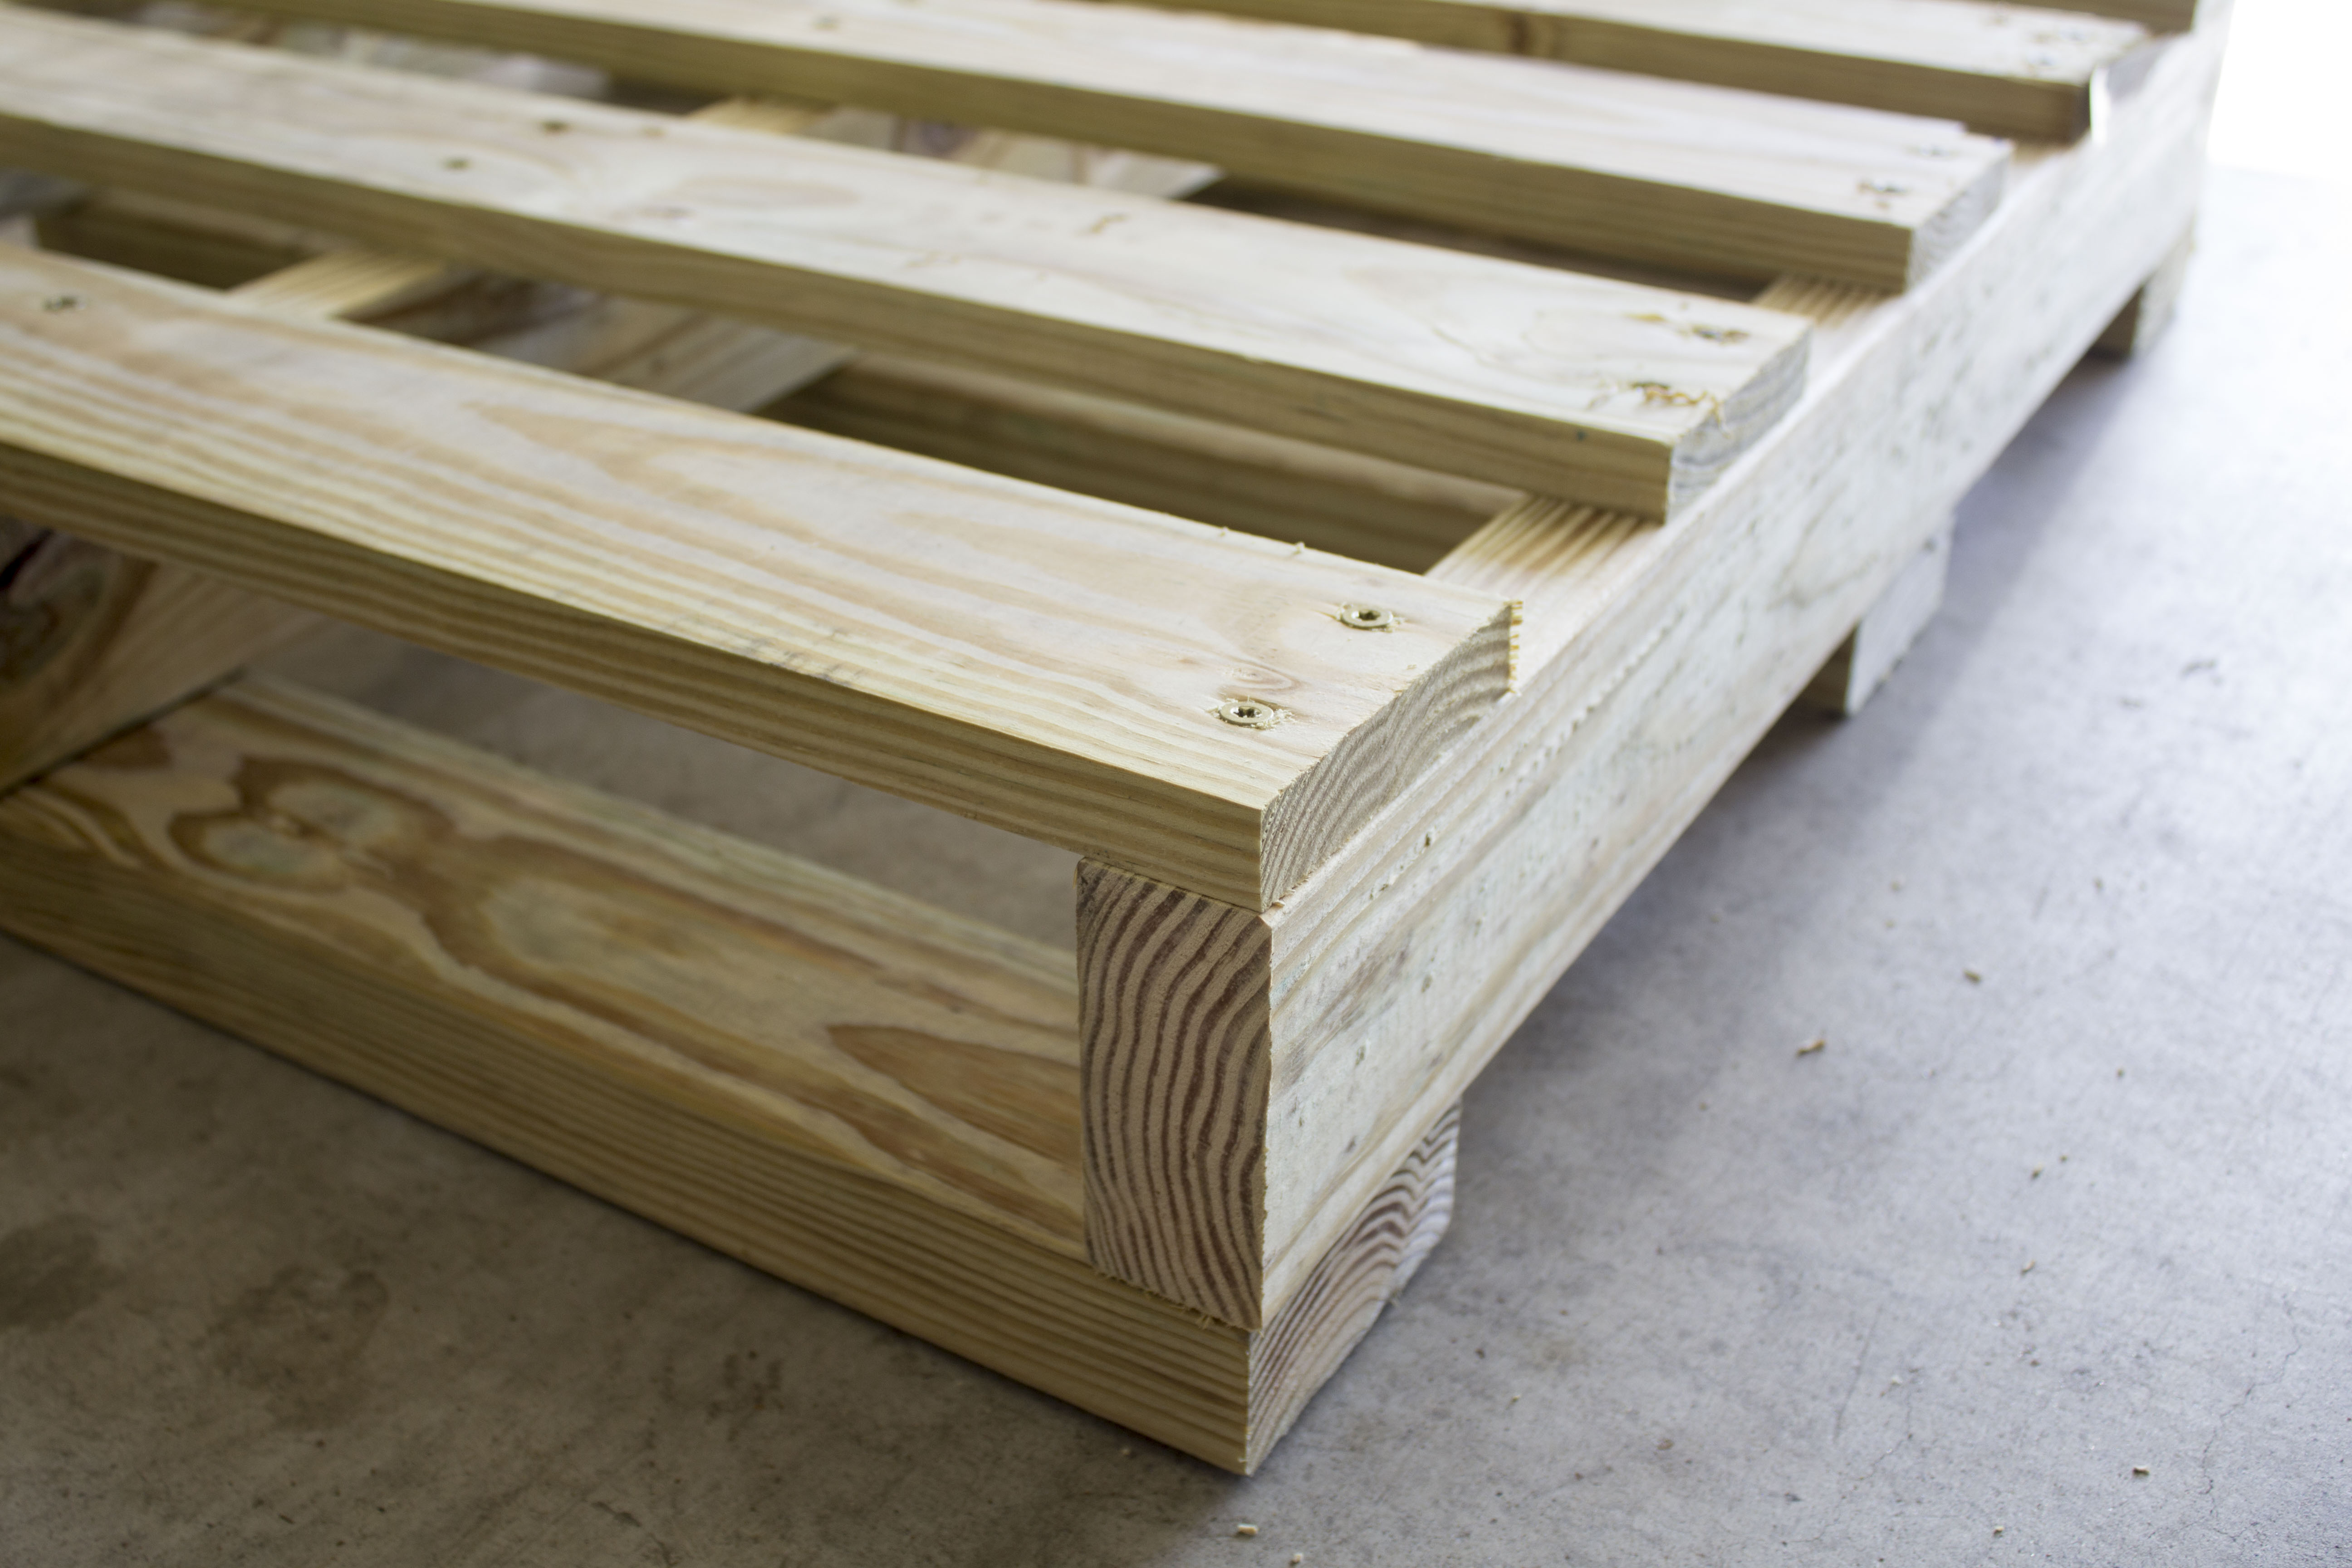 How to Make a Pallet